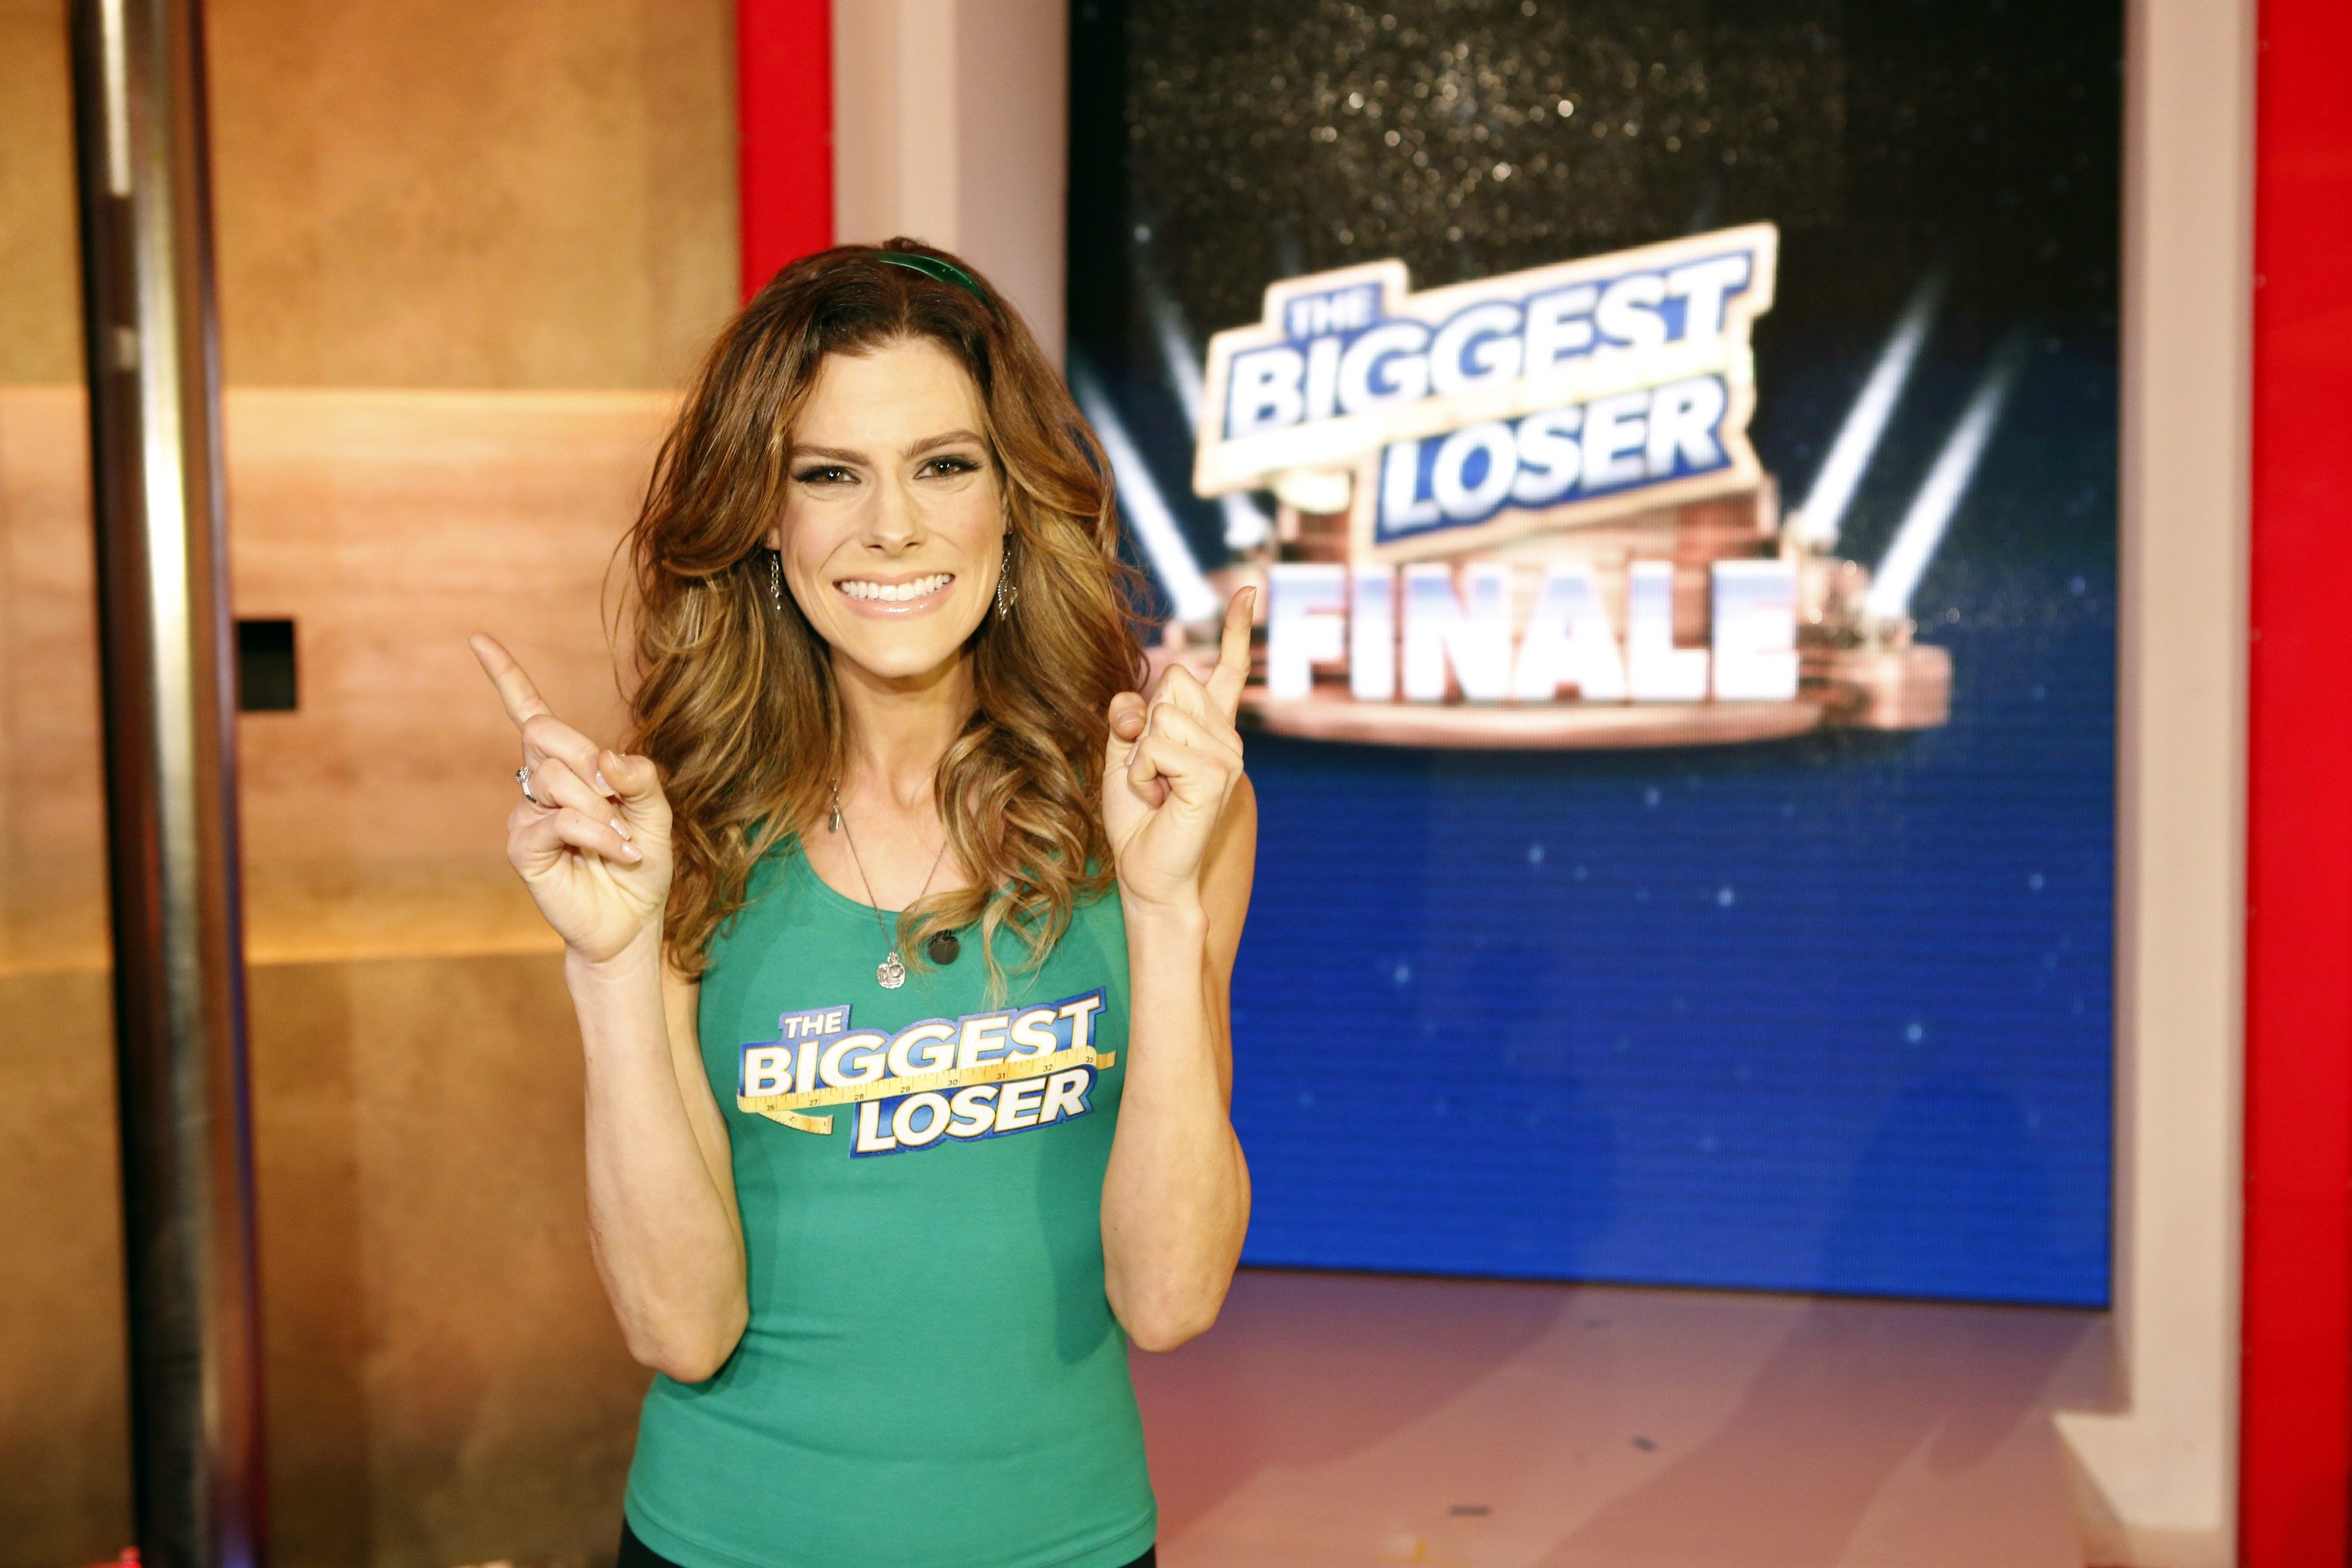 Rachel Frederickson on The Biggest Loser finale on Feb. 4th at 105 pounds